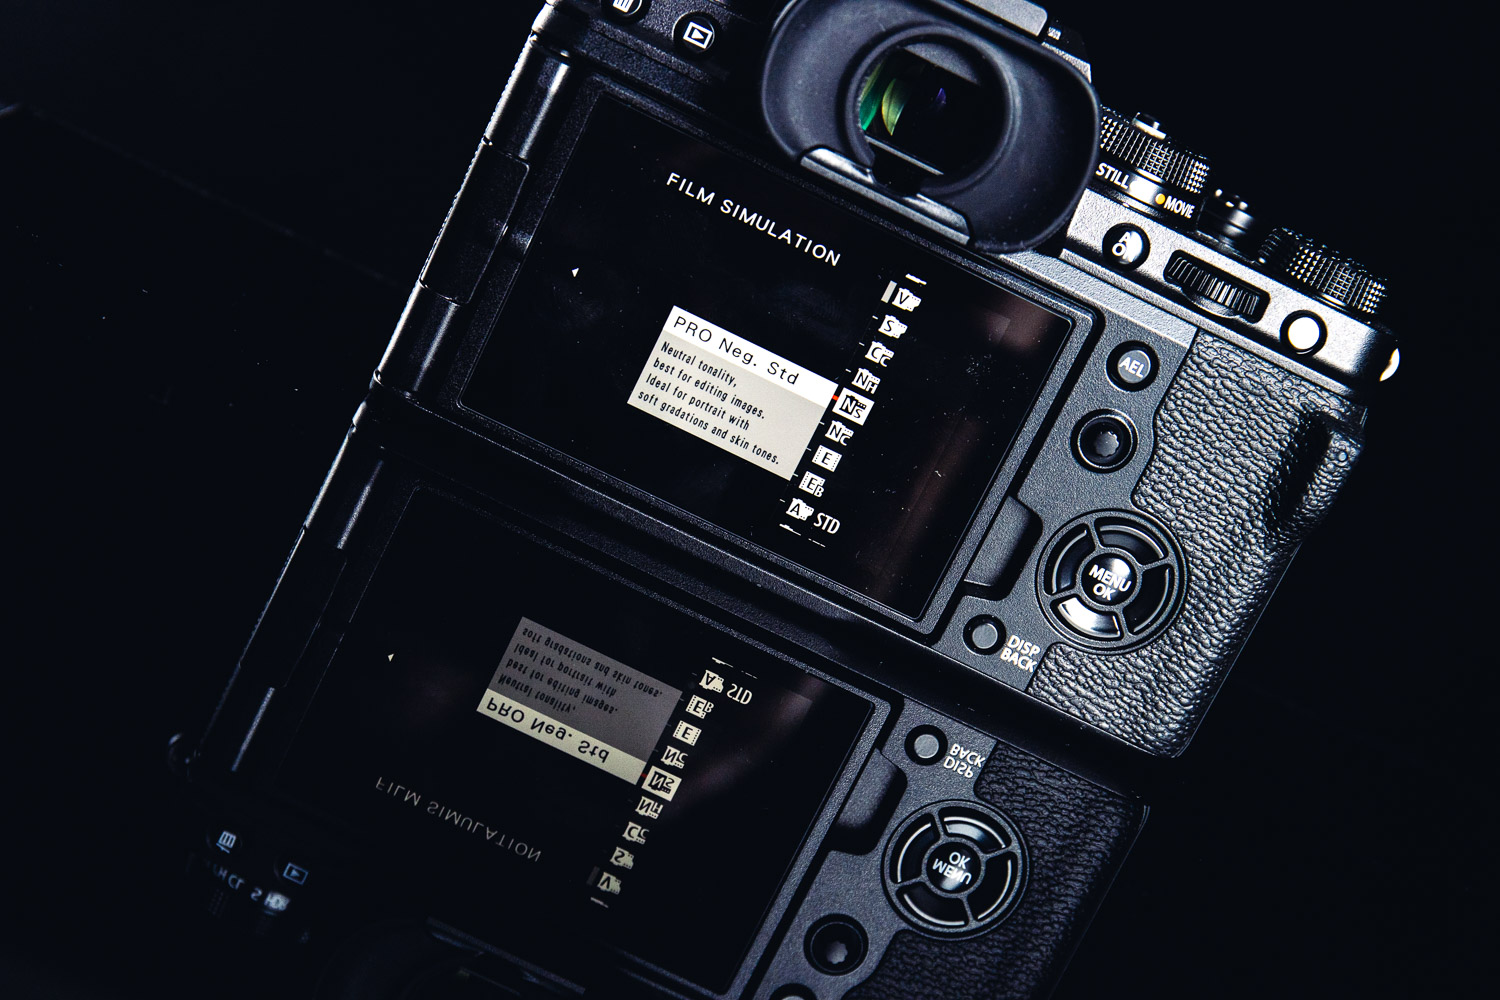 The X-T4 includes useful film simulation modes